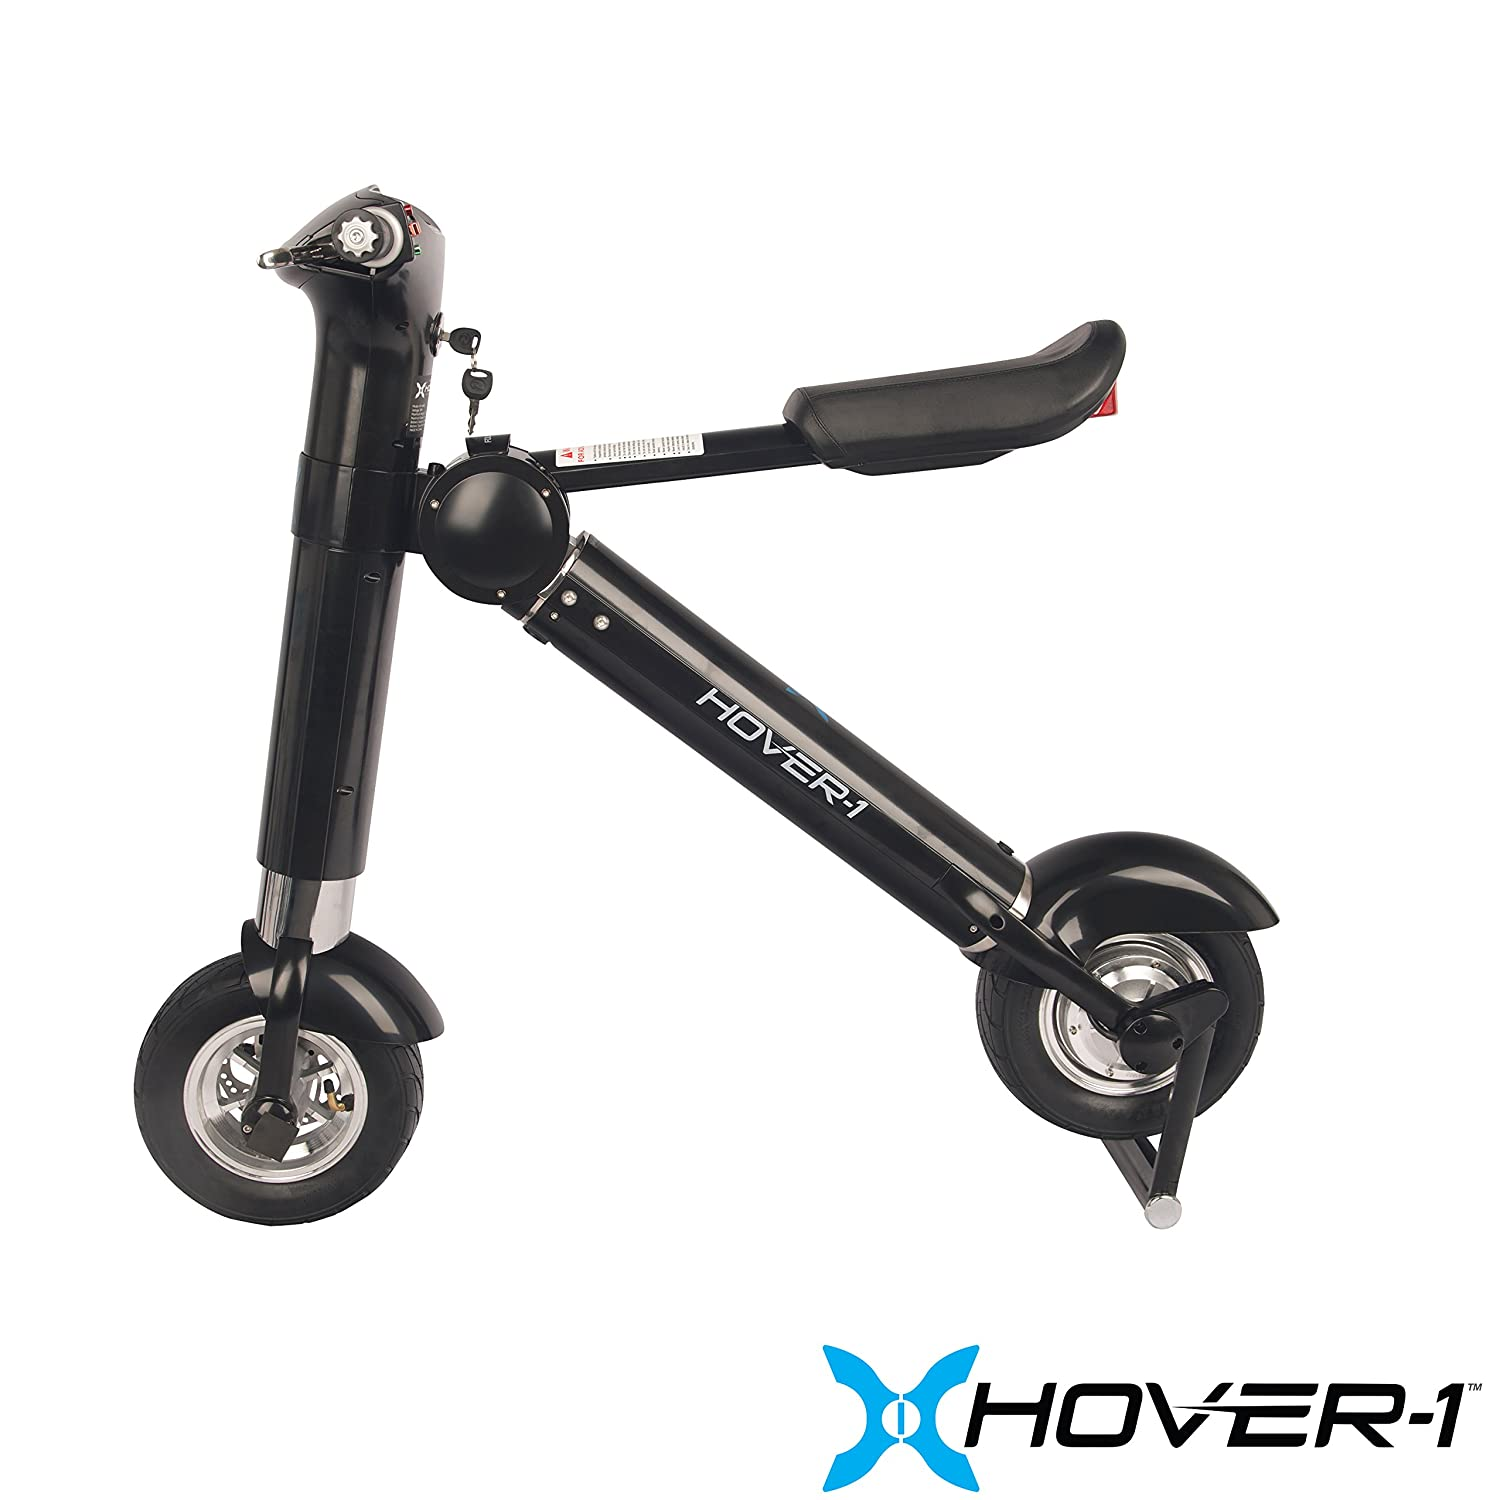 Hover-1 XLS- E-Bike Folding Electric Scooter with LED Displays